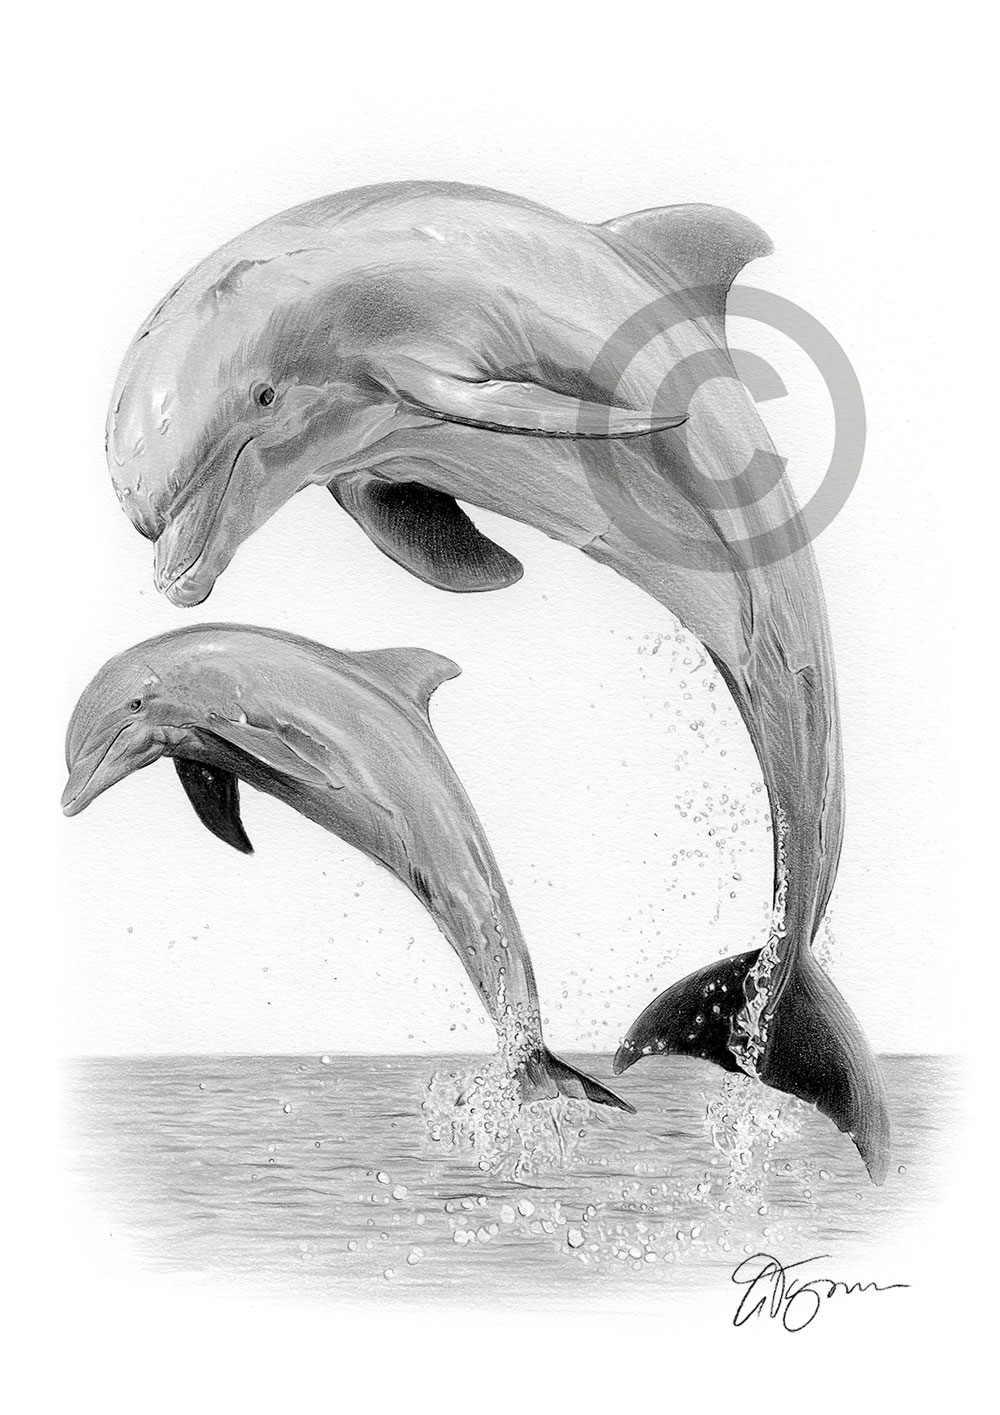 Pencil drawing of a dolphin by artist Gary Tymon